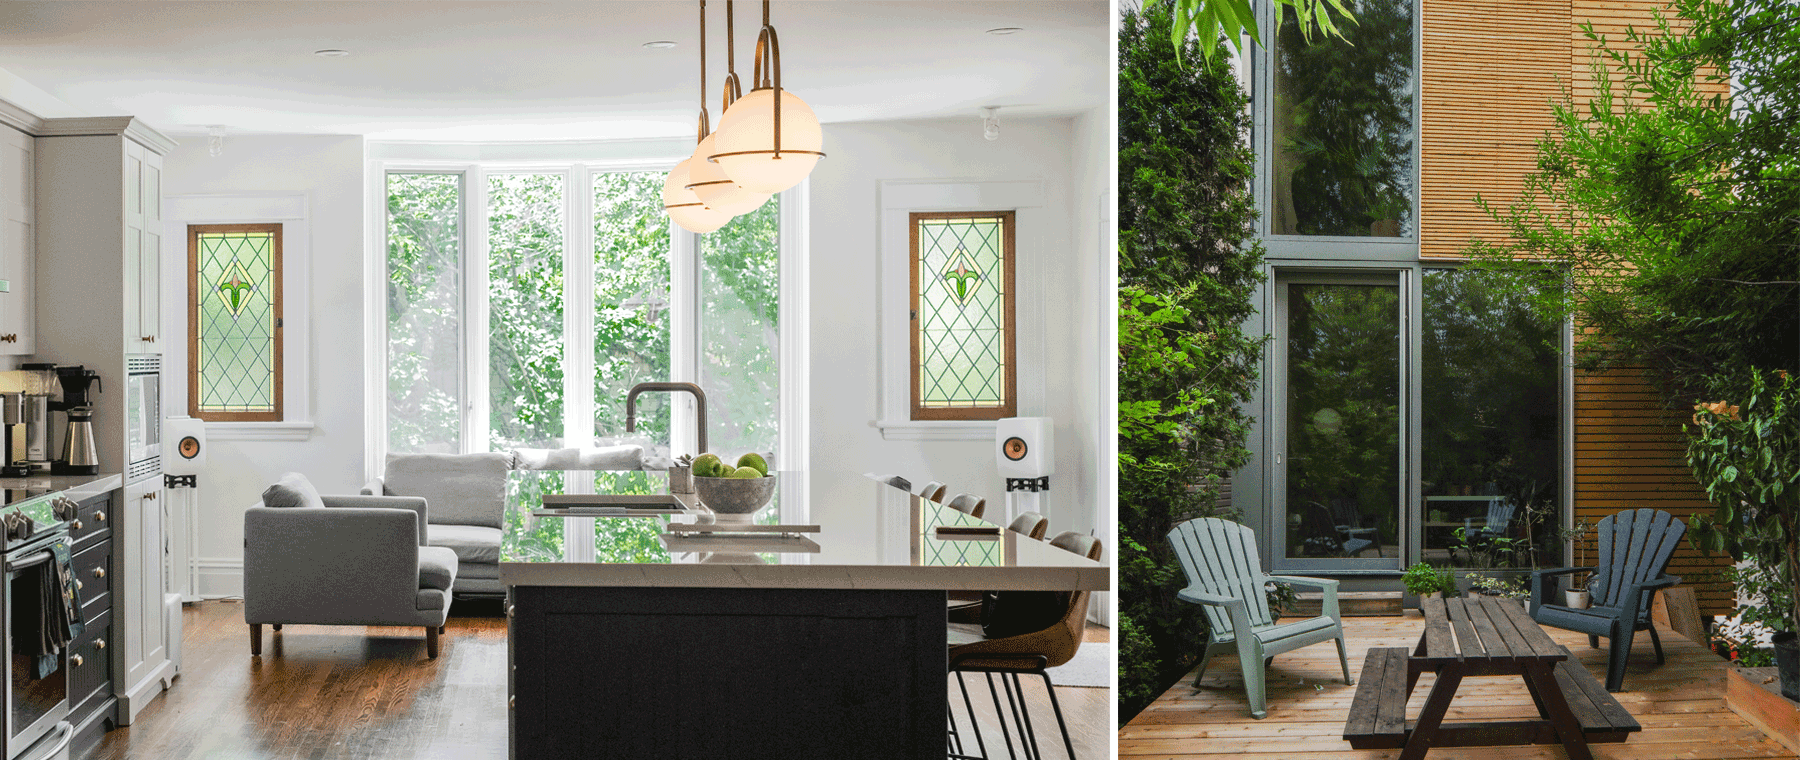 5 inspirational addresses on this year's Glebe House Tour